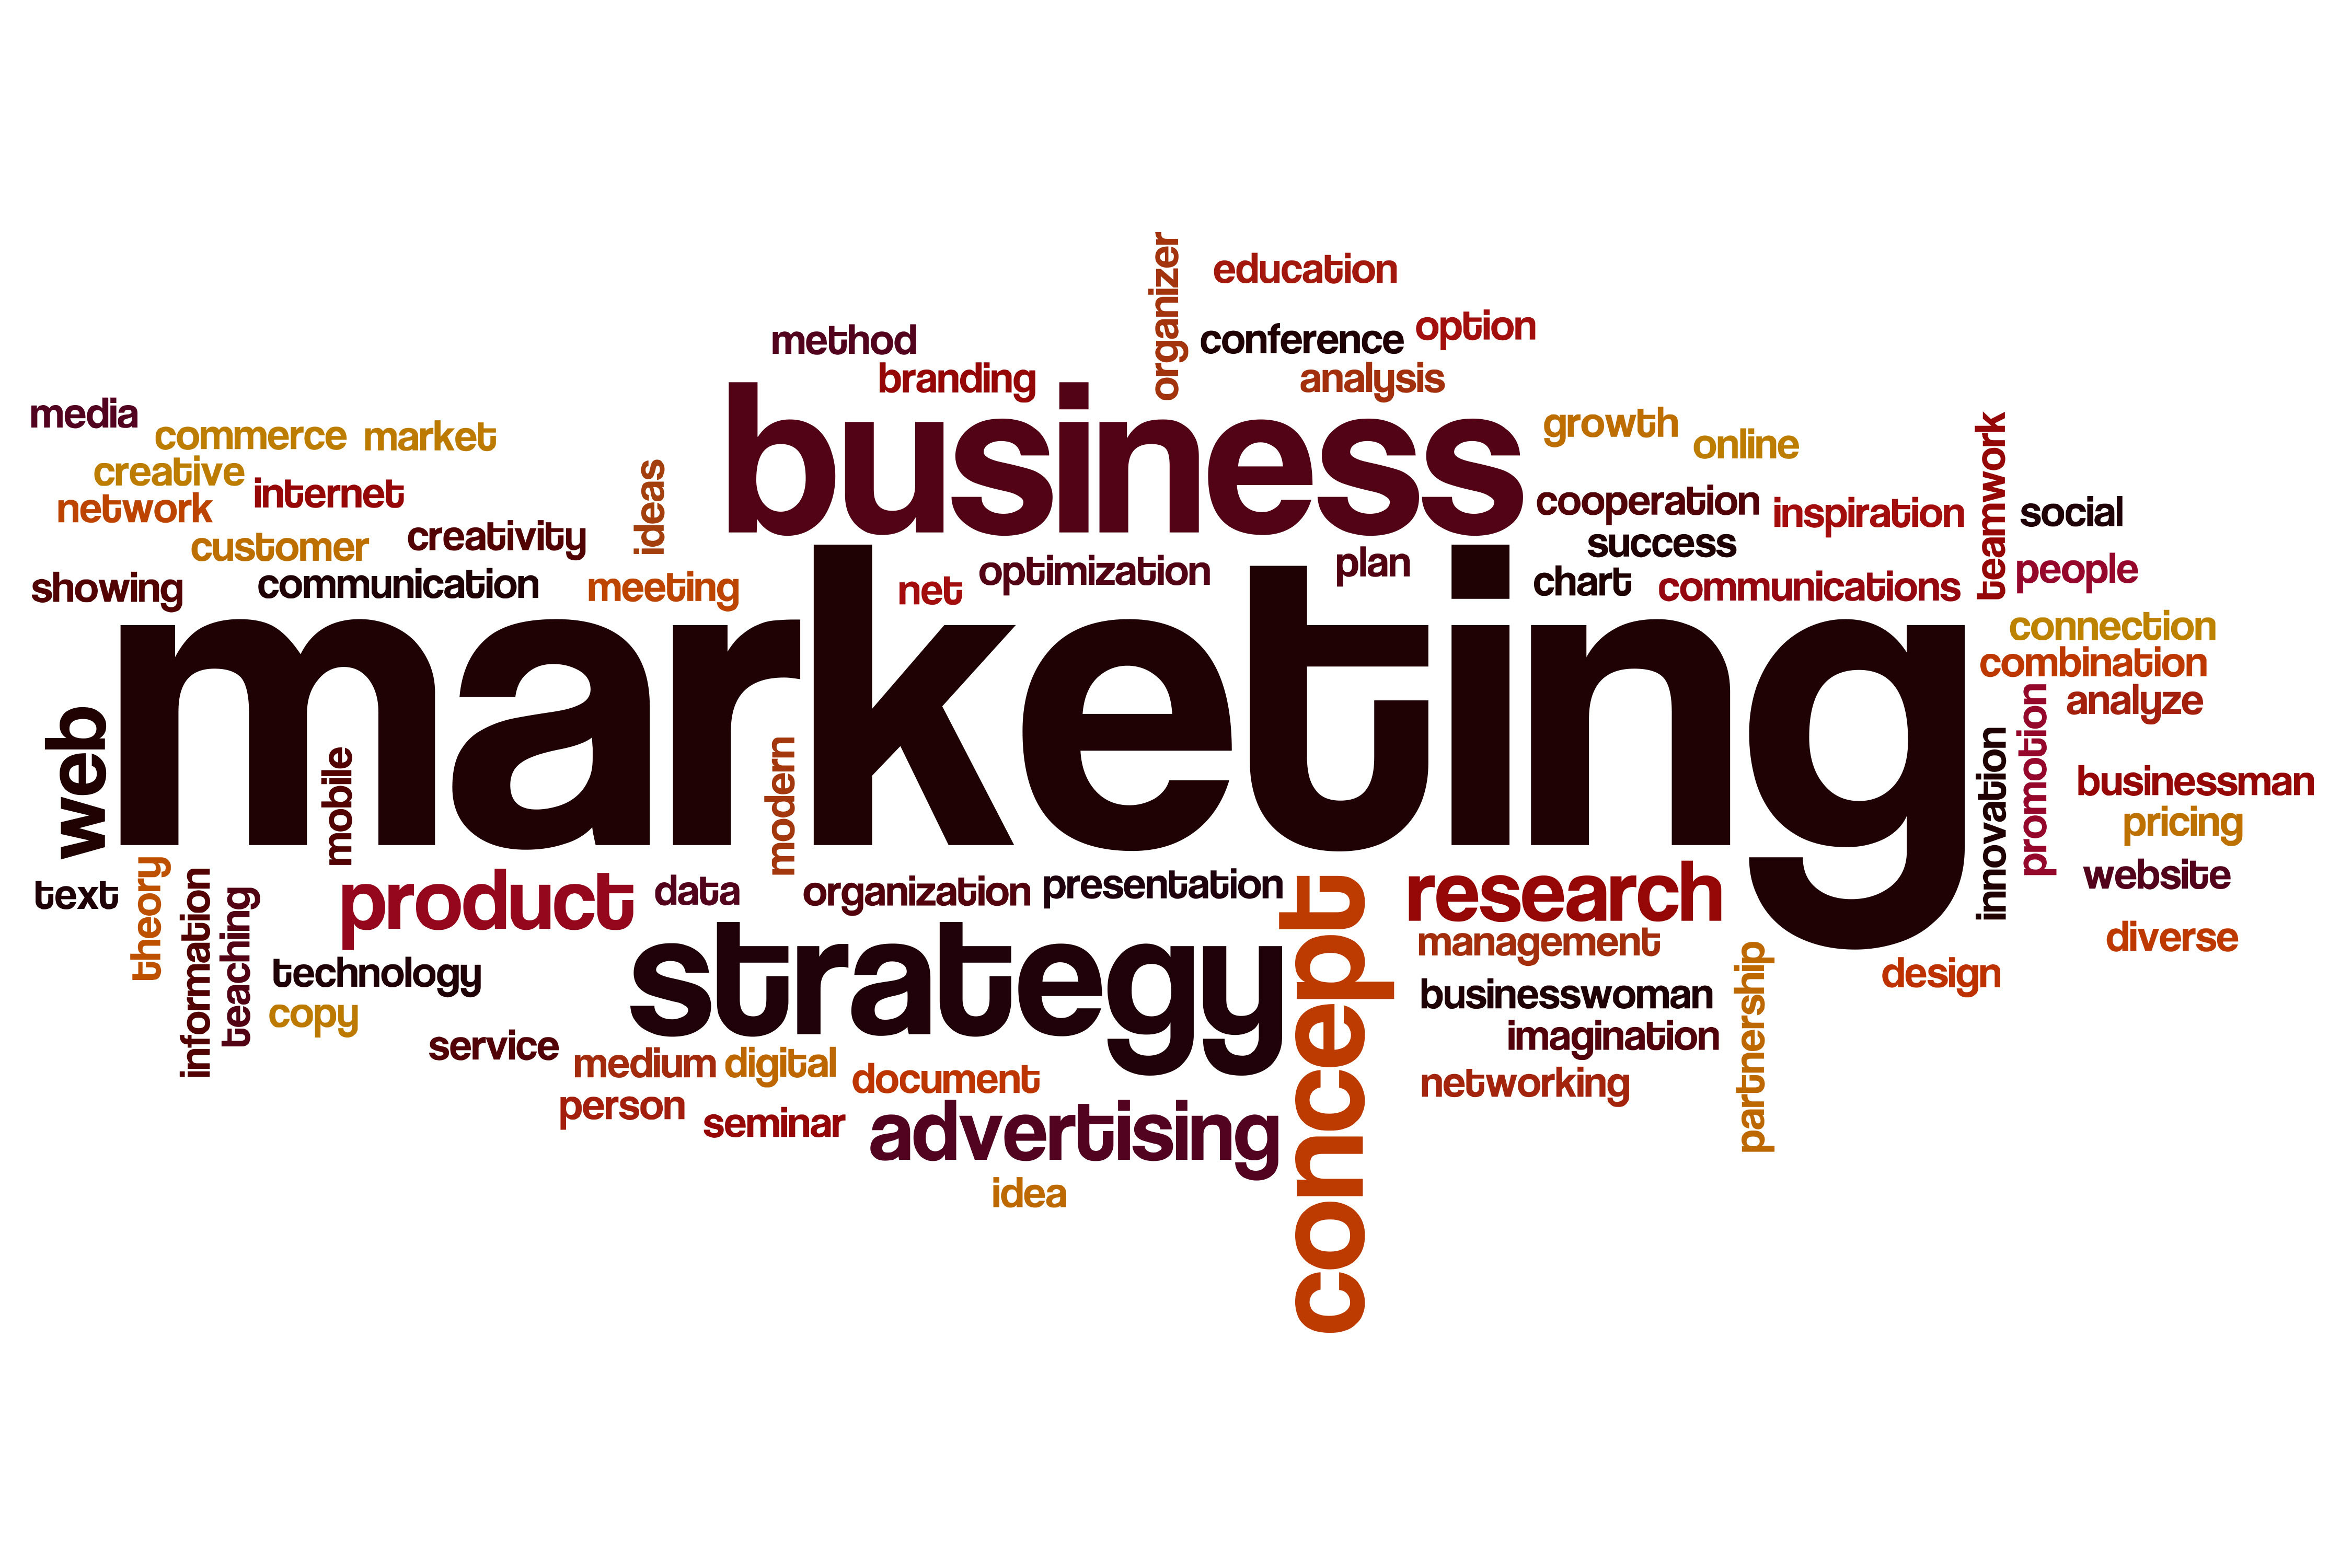 Strategies for a successful marketing campaign